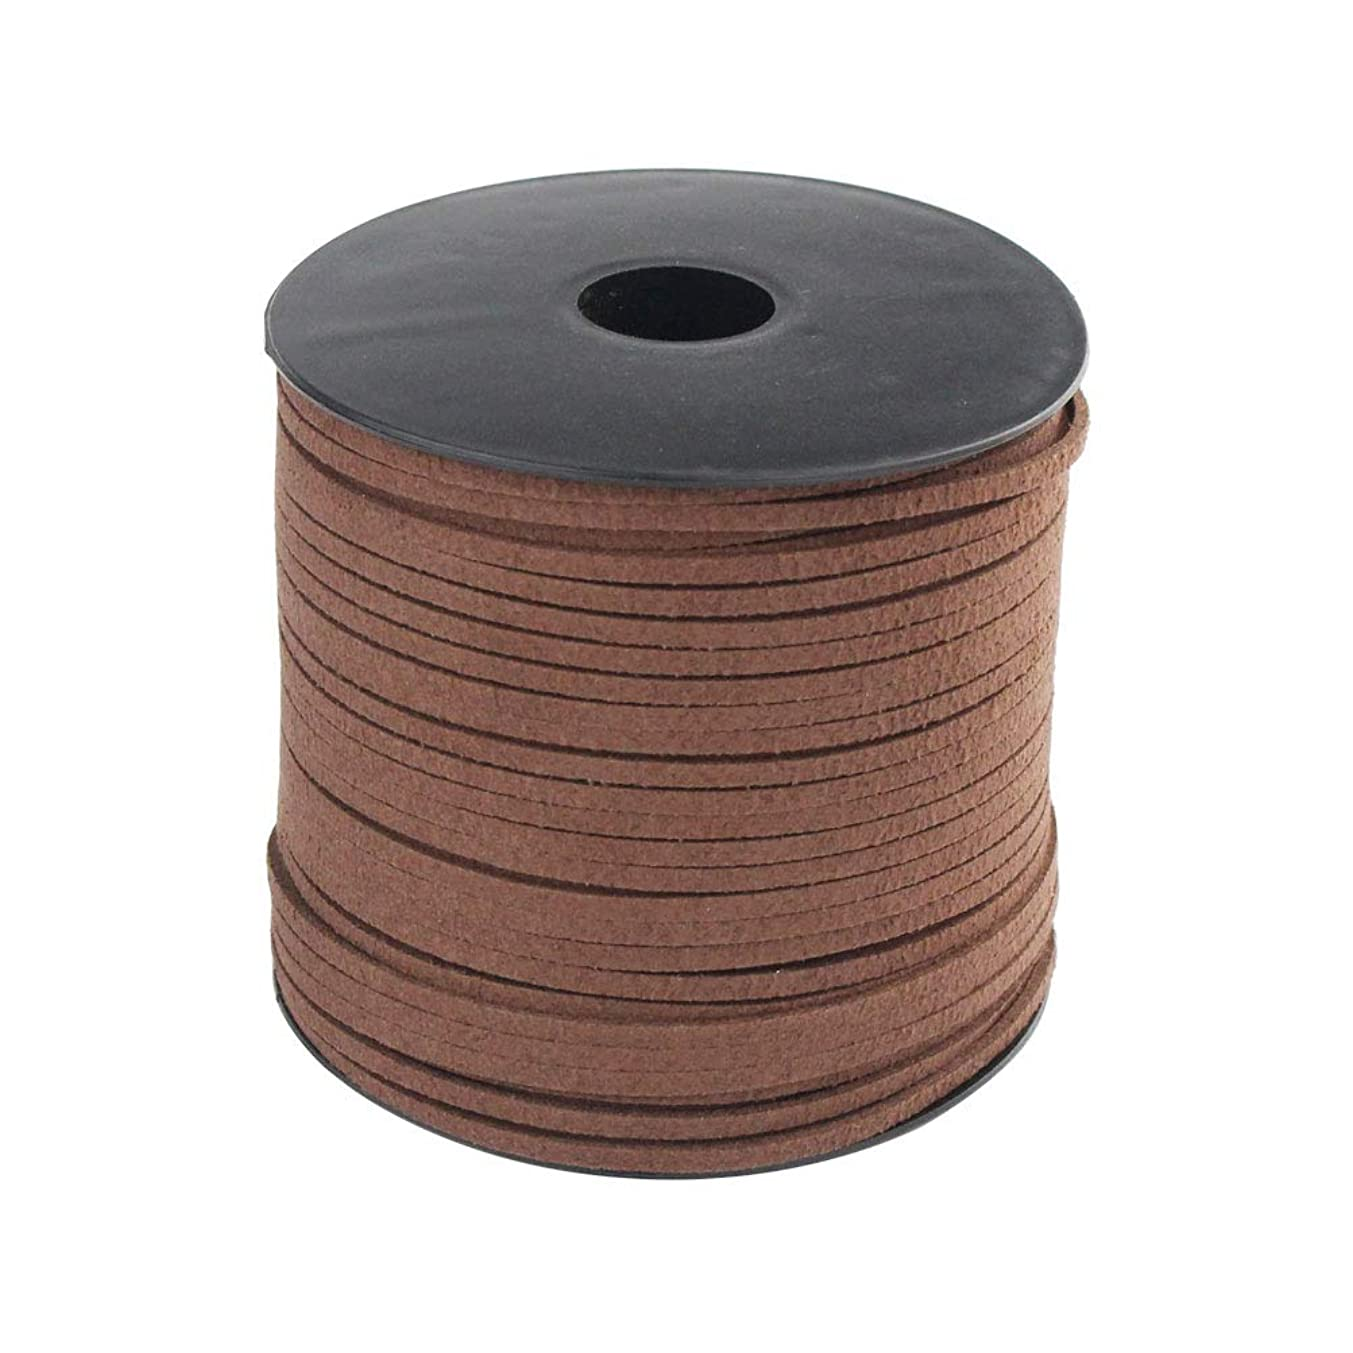 Wobe 100 Yards Suede Cord, Leather Cord 2.6mm x 1.5mm Suede String Lace Faux Leather Cord with Roll Spool for Bracelet Necklace Beading DIY Handmade Crafts Thread String (Coffee 1 roll)